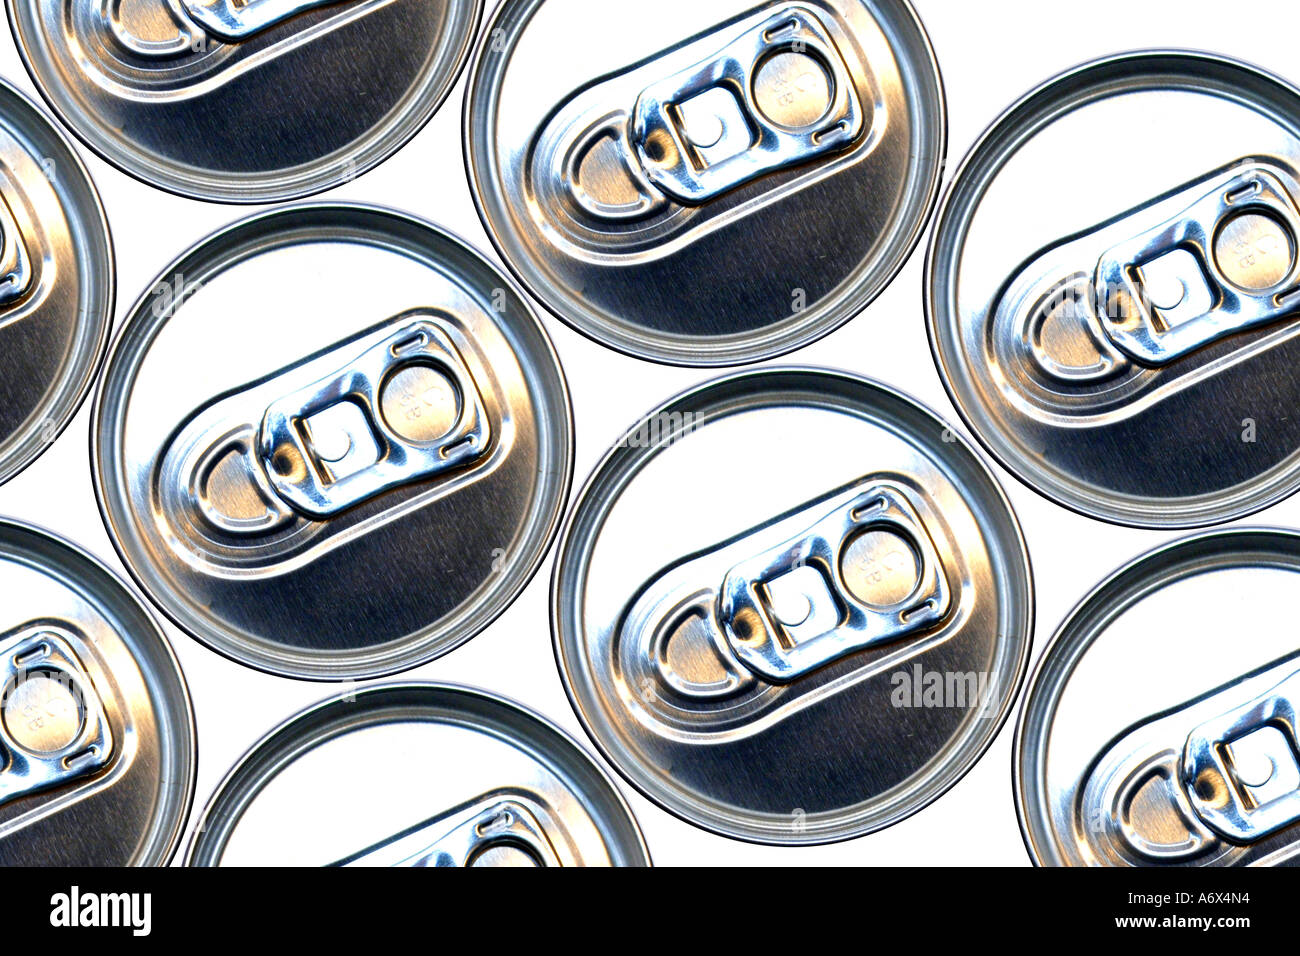 A group of Aluminum Cans tops and their pull tabs. - Stock Image